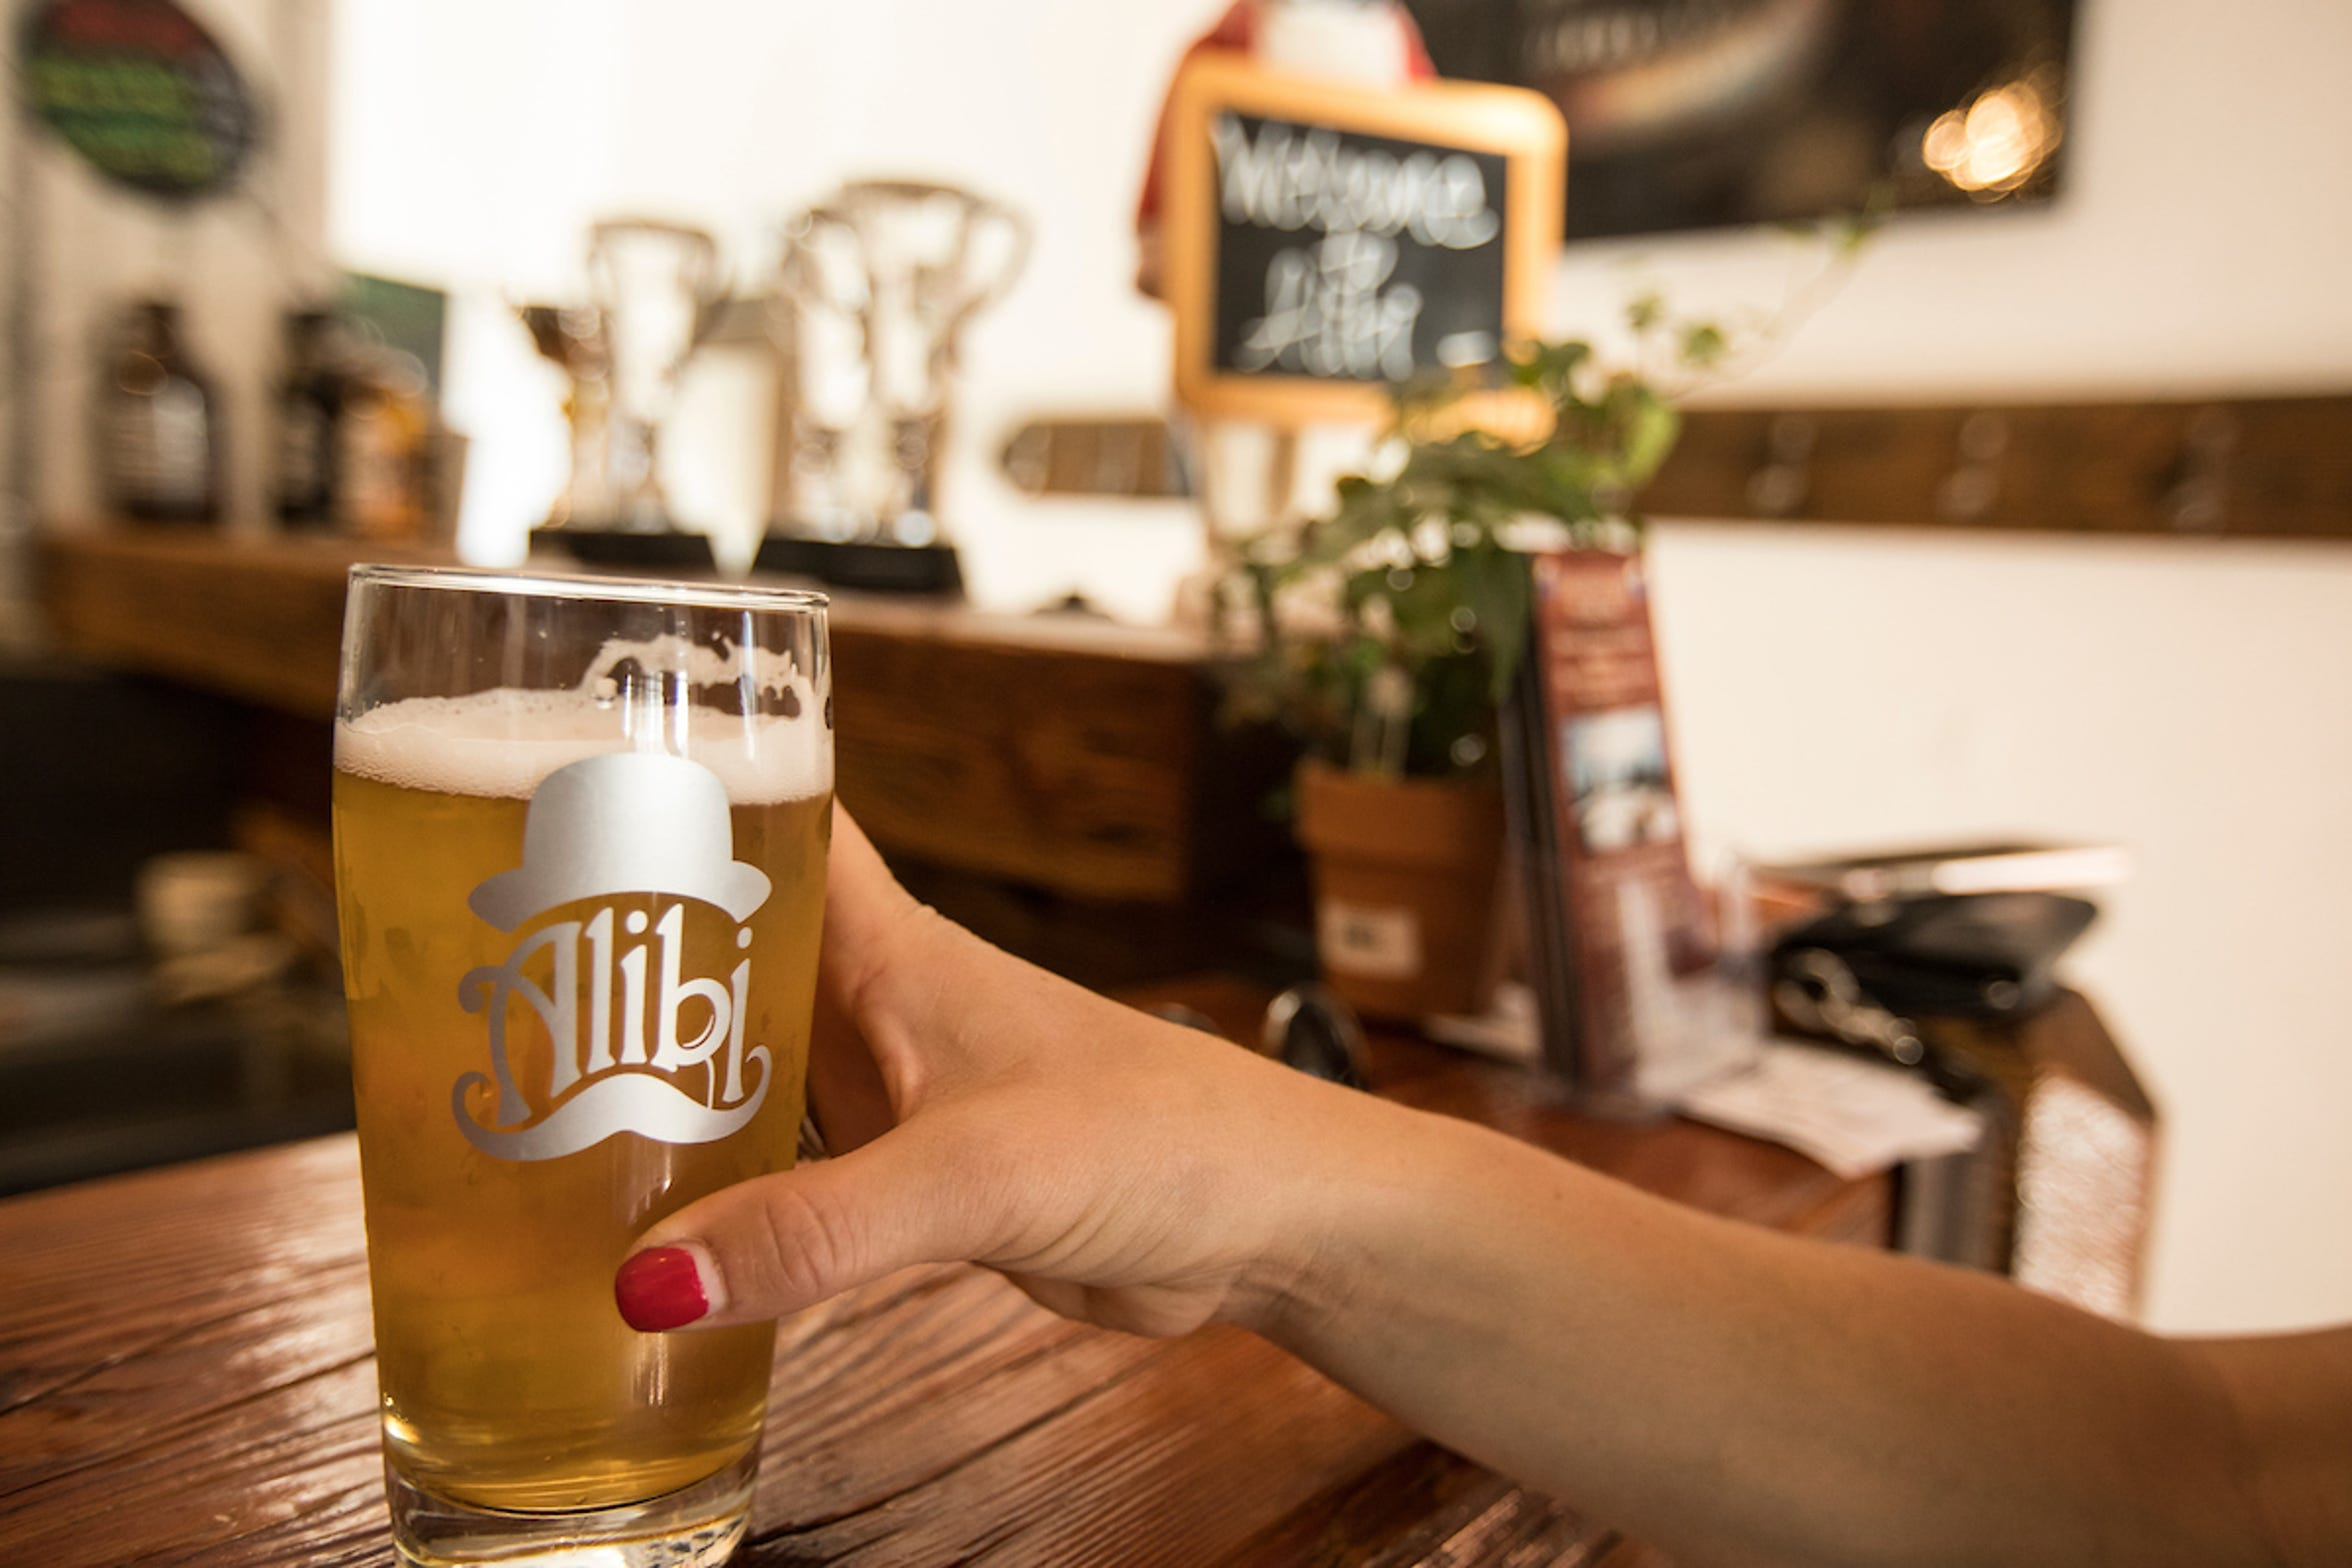 Alibi Ale Works, with two locations on the North Shore of Lake Tahoe, crafts traditional European beers, lively hop-centric beers and special releases.